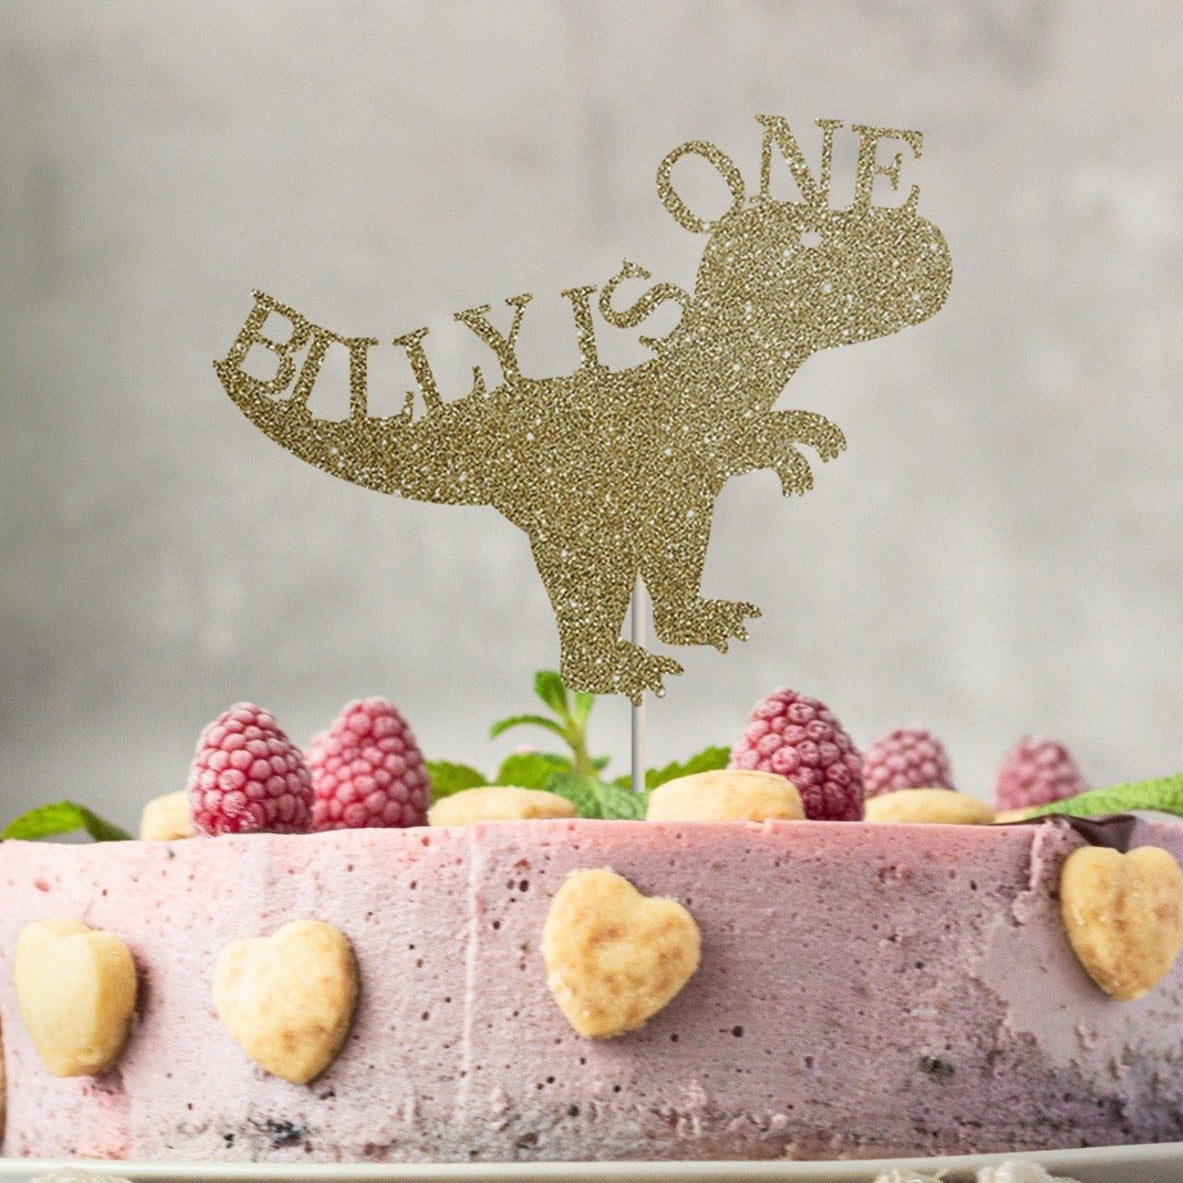 Excellent Personalised First Birthday Cake Topper Dinosaur Theme Pomchick Personalised Birthday Cards Paralily Jamesorg